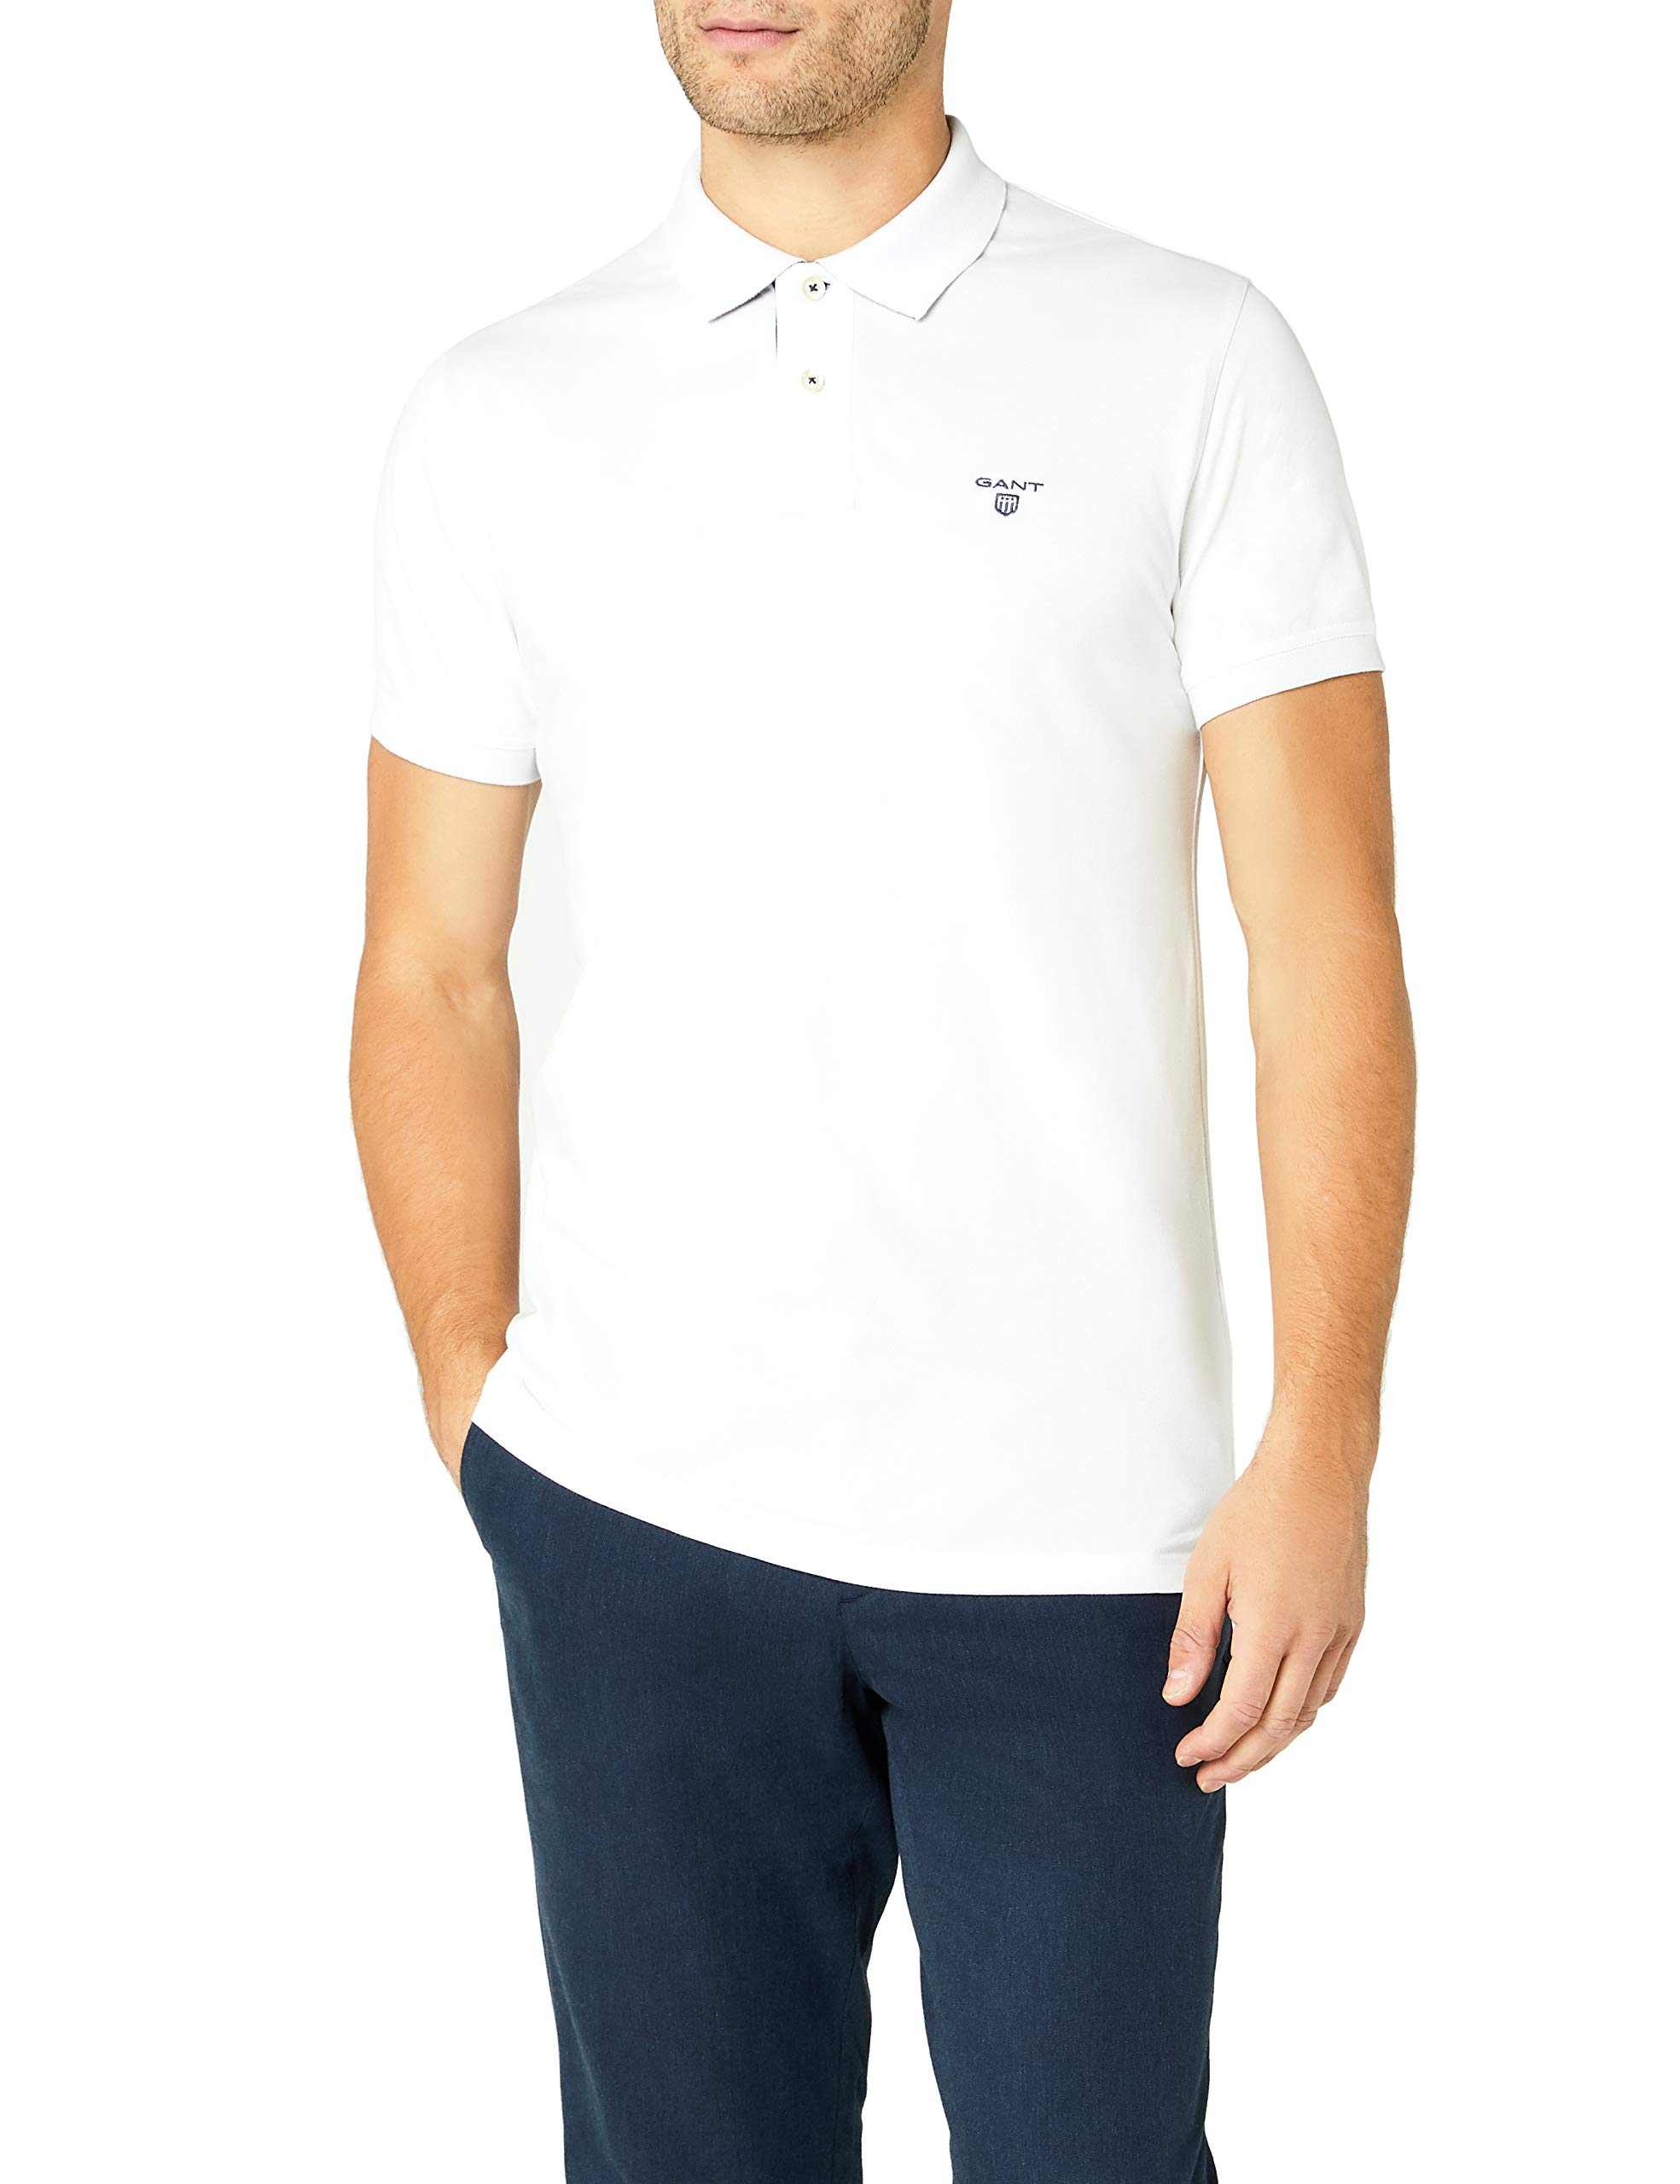 Courtes Homme Manches Size Col Mbrand Fabricant FrMediumtaille Blanc GantPolo wmN08n